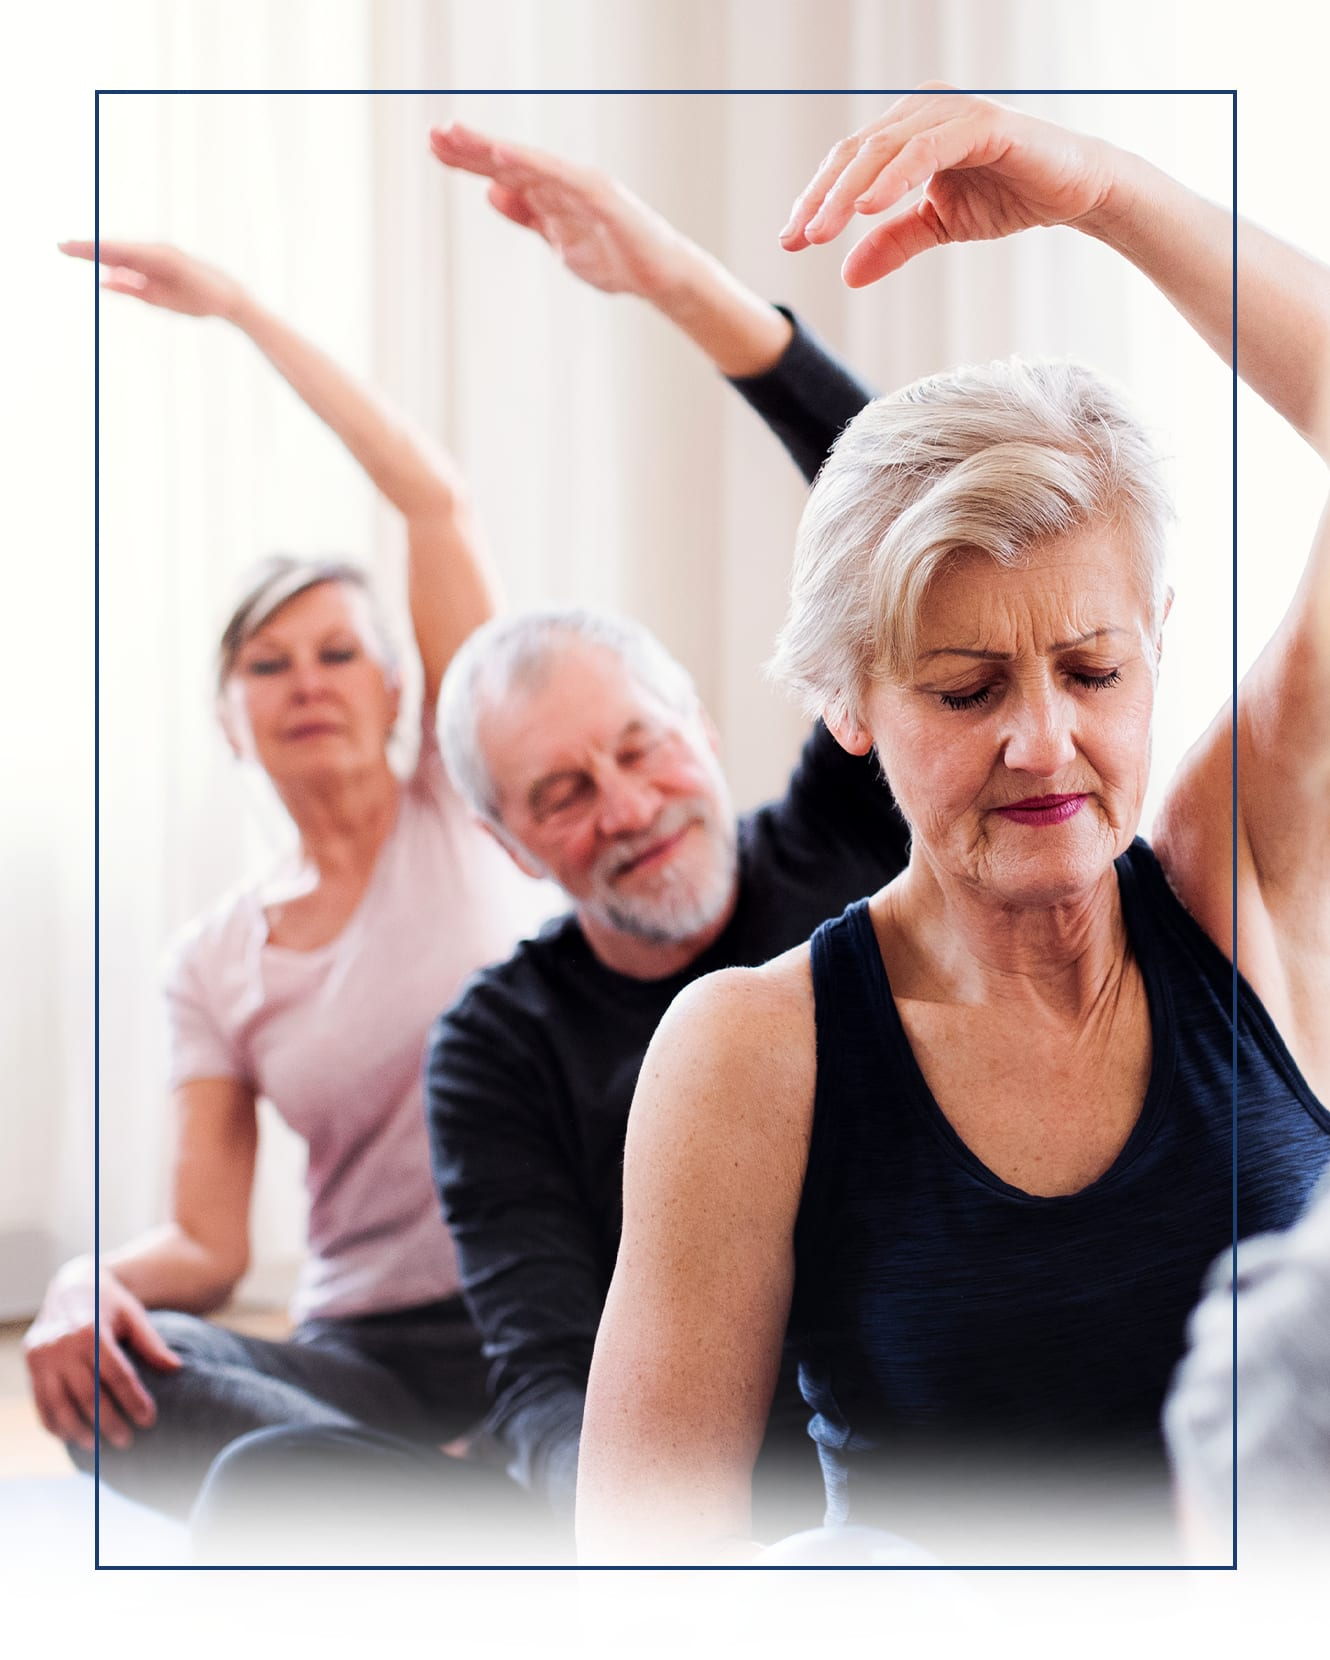 The Claiborne at Brickyard Crossing offers a wellness center in Summerville, South Carolina